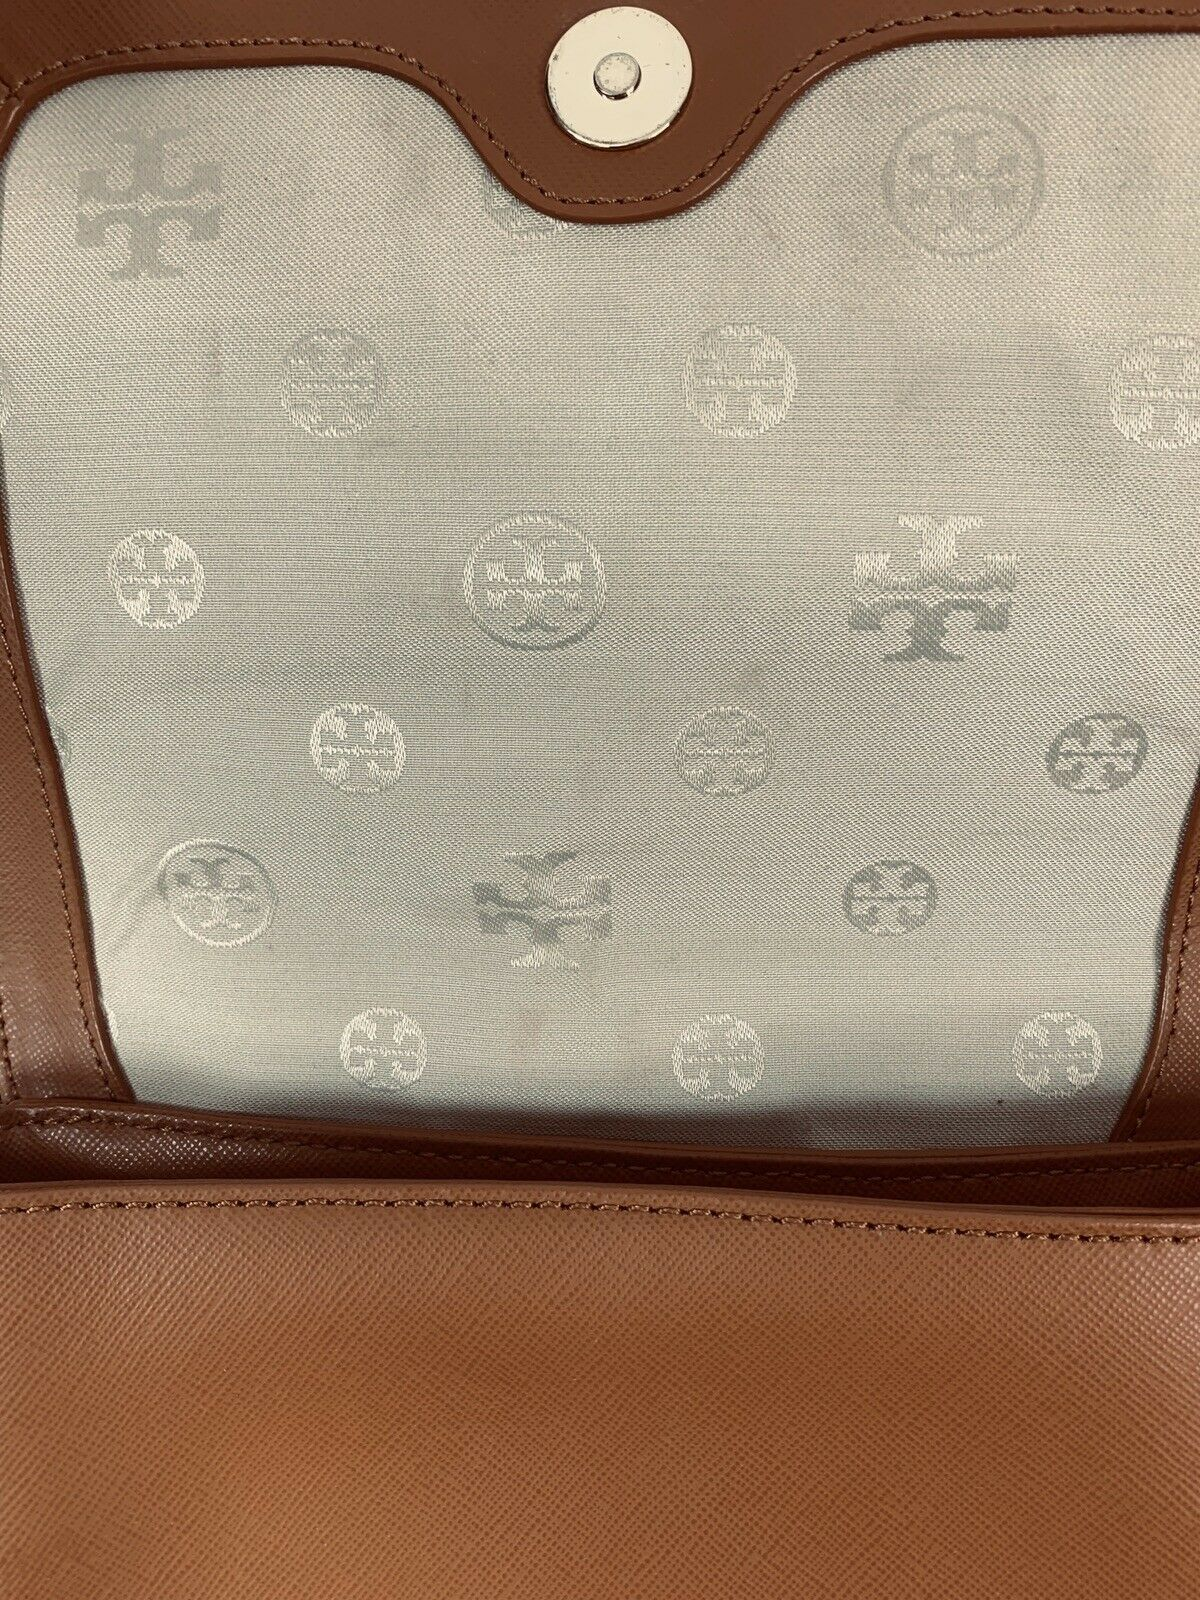 Tory Burch Robinson Chain Strap Tiger's Eye Brown Leather Crossbody Bag image 4